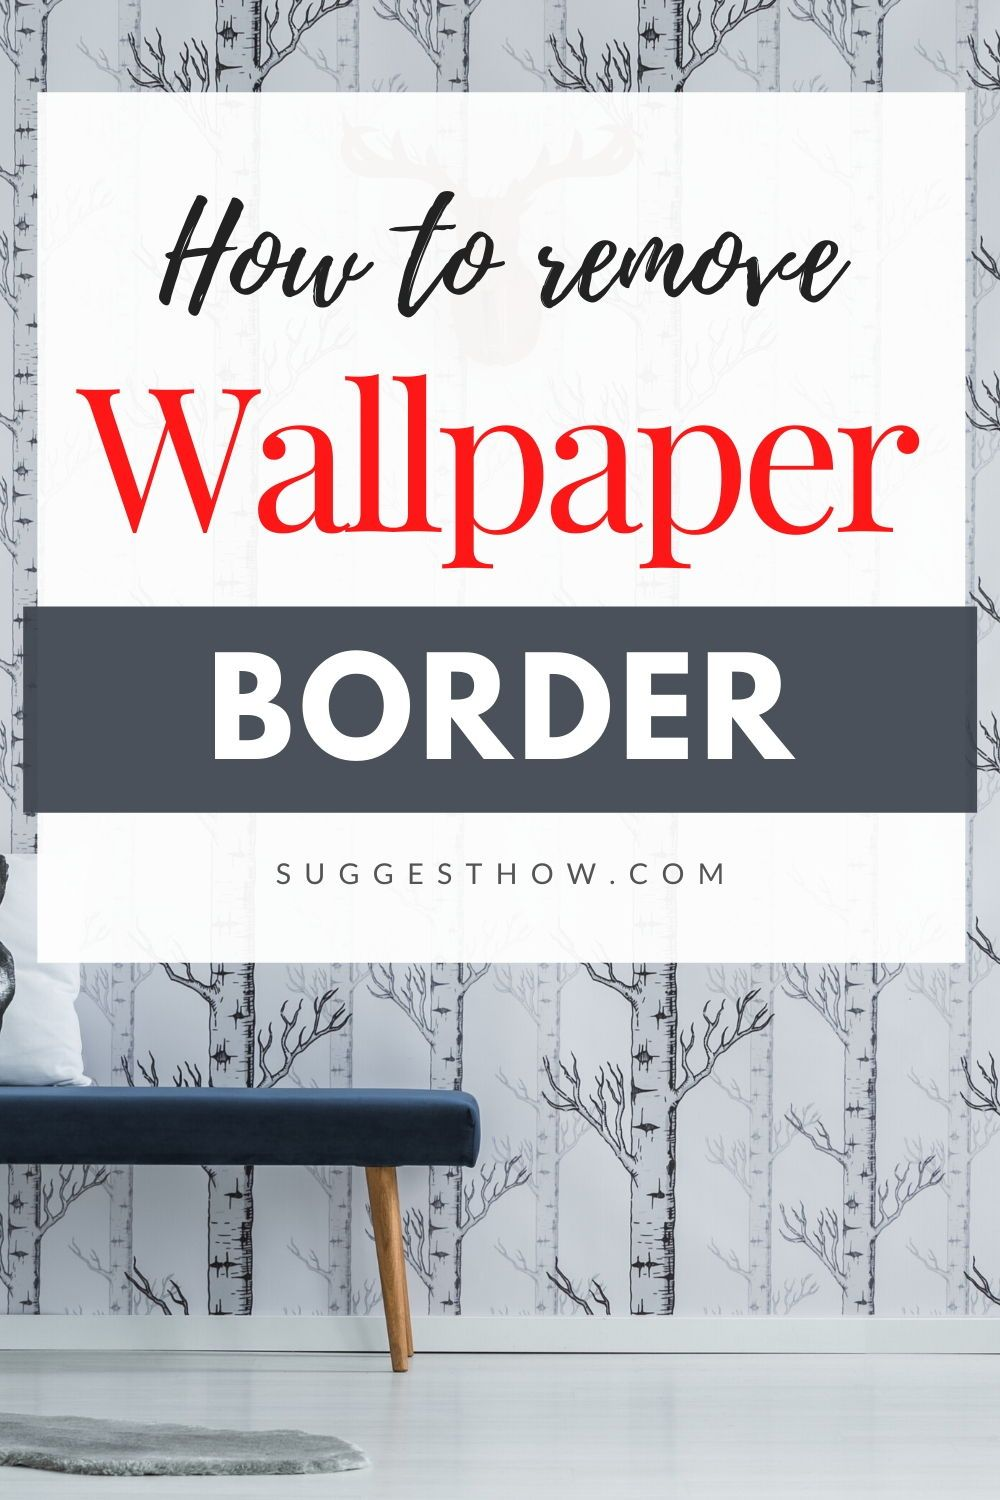 How To Remove Wallpaper Border 6 Steps To Follow In 2020 Remove Wallpaper Borders Wallpaper Border Removable Wallpaper